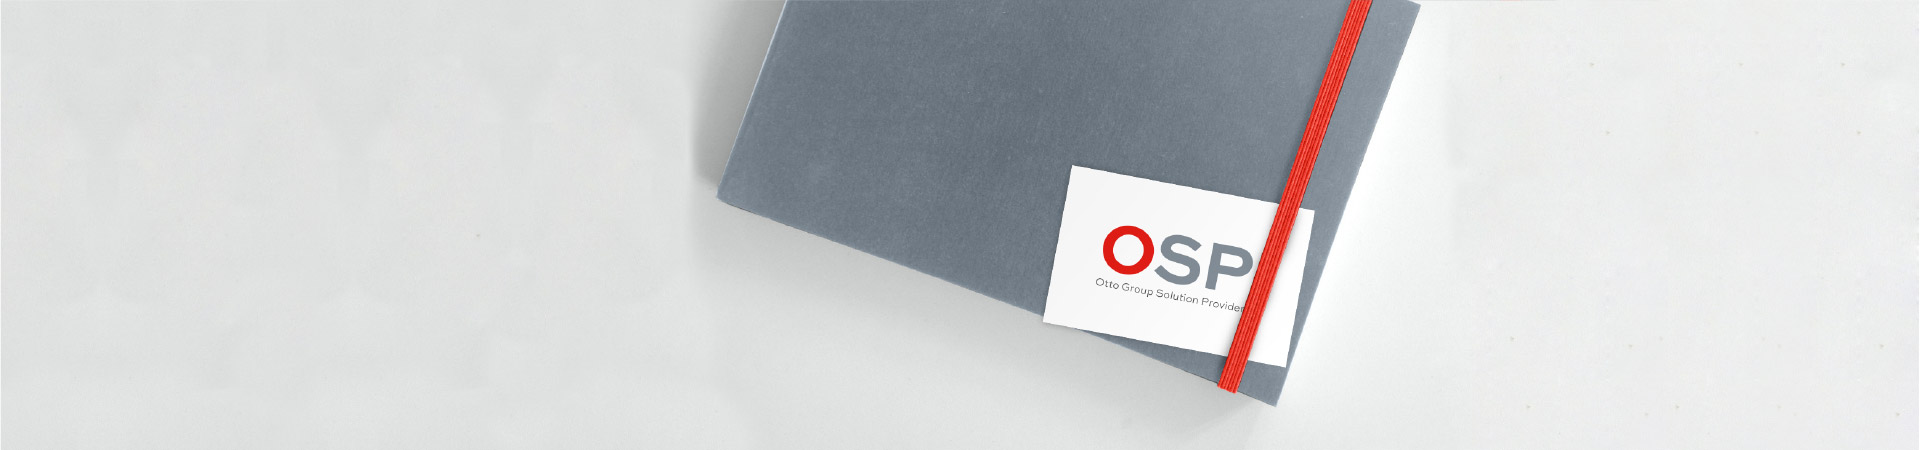 Contact Otto Group Solution Provider (OSP)